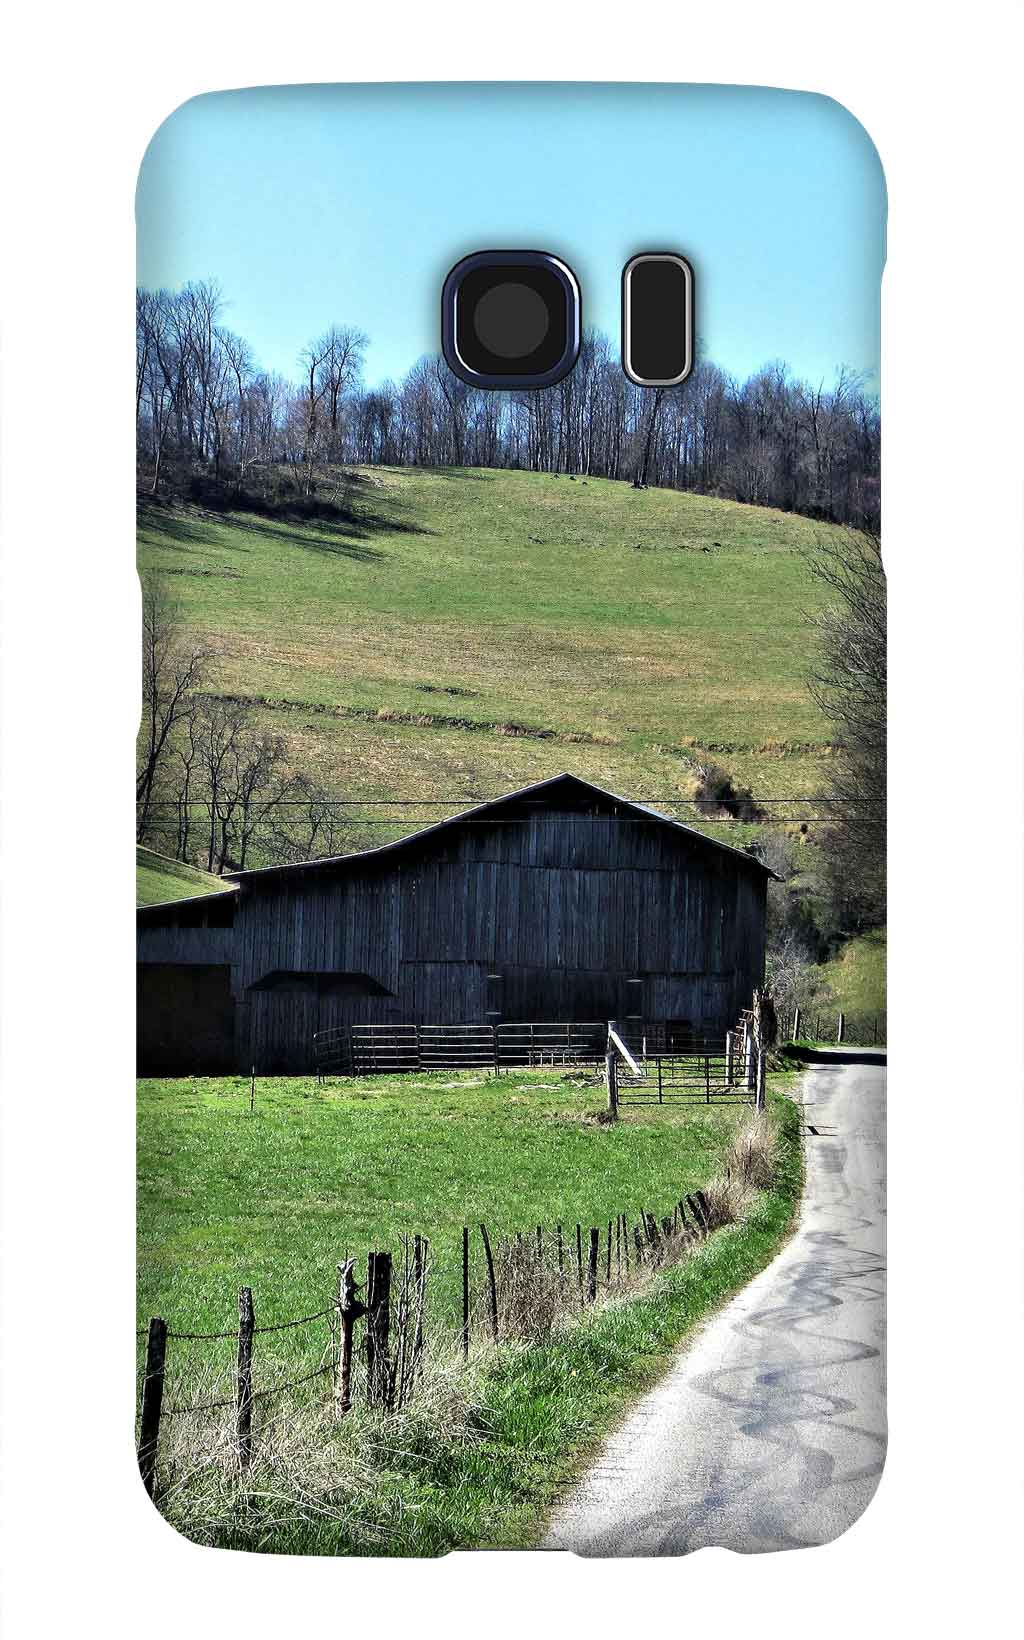 Product, Cellphone Case: At the End – Black barn at the end of a driveway with blue skies and mountain